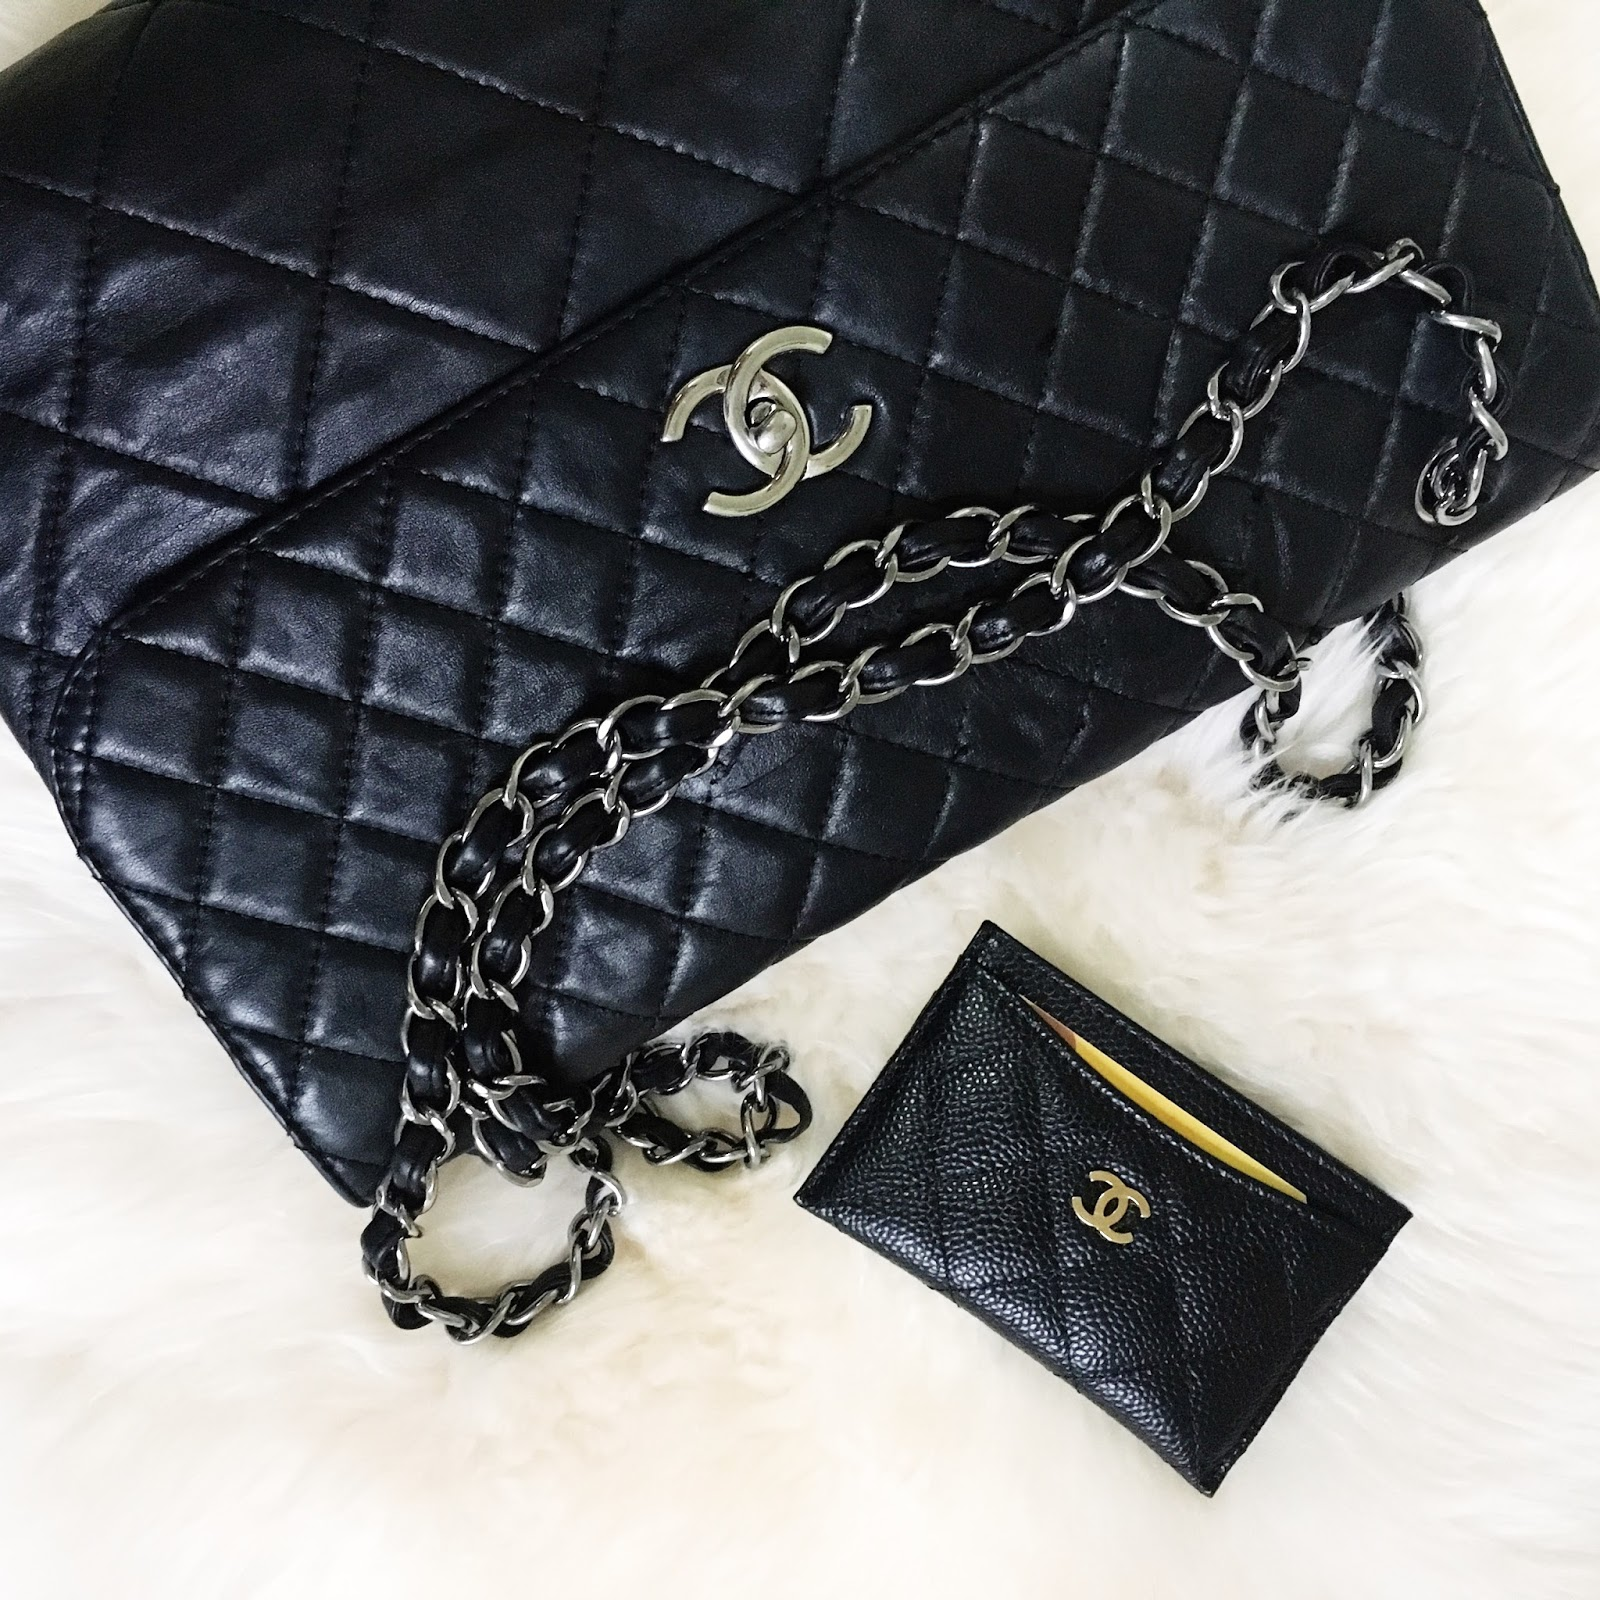 76702de59e40 chanel in the business lambskin large jumbo flap bag with shw silver  hardware chanel caviar card